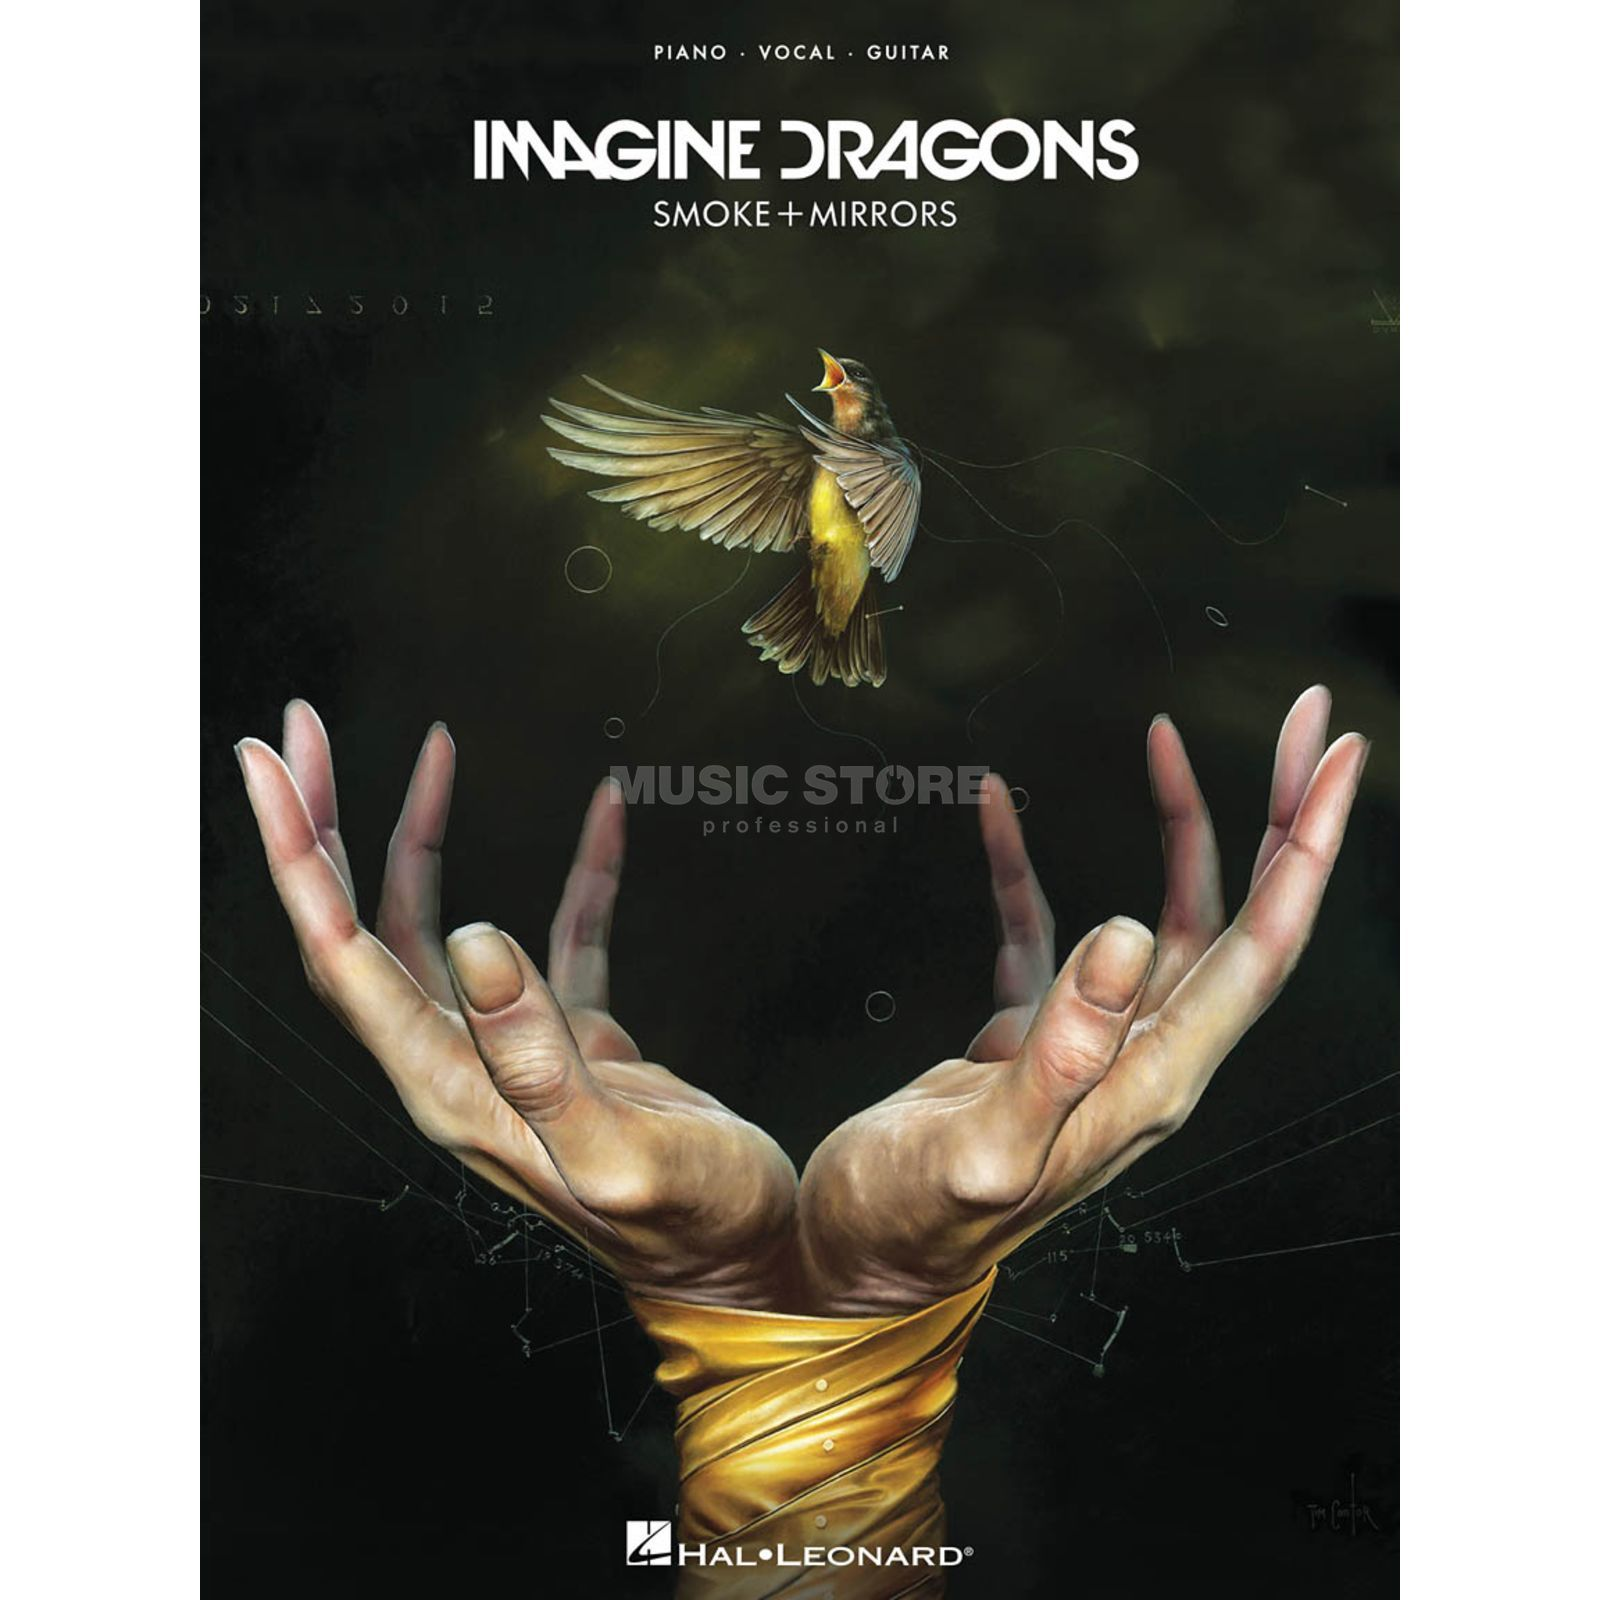 Hal Leonard Imagine Dragons: Smoke + Mirrors Produktbild